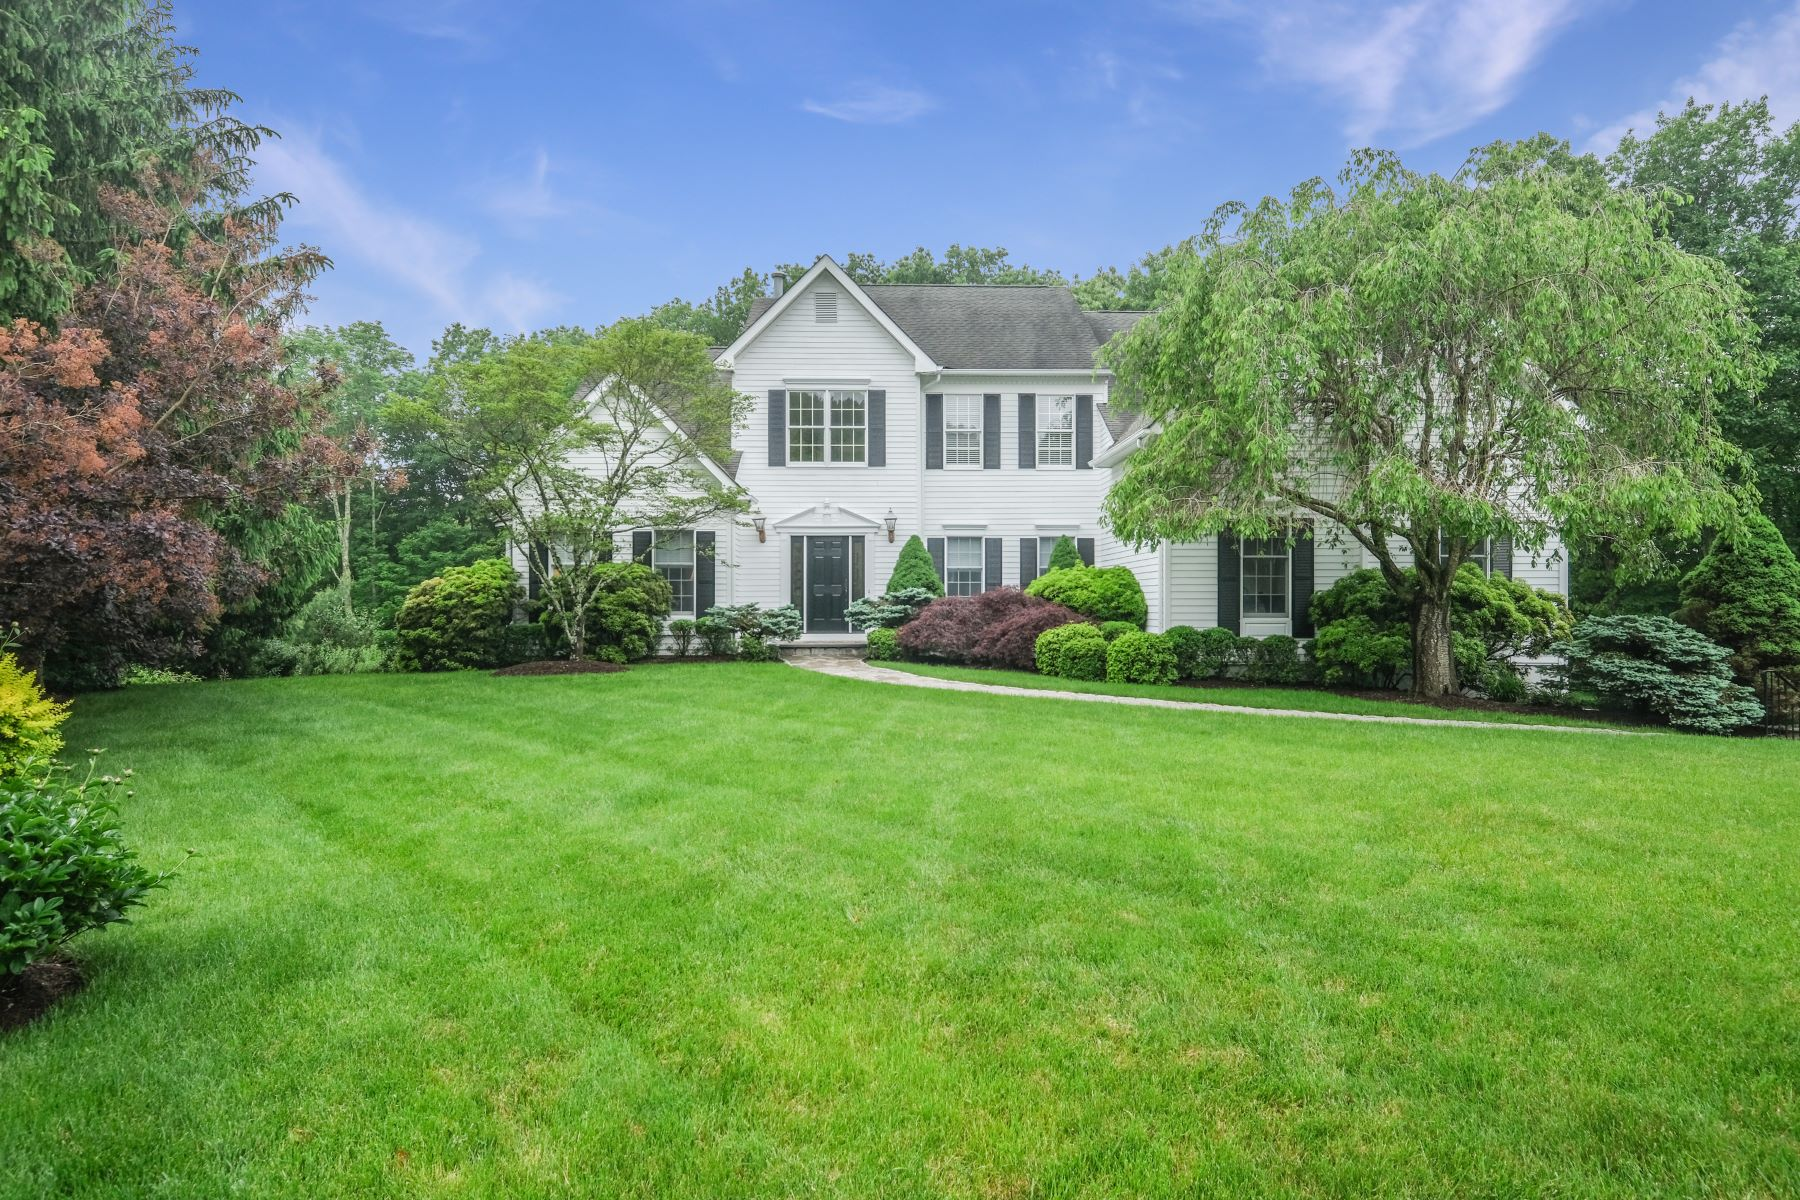 single family homes for Sale at 44 Carlton Drive Mount Kisco, New York 10549 United States